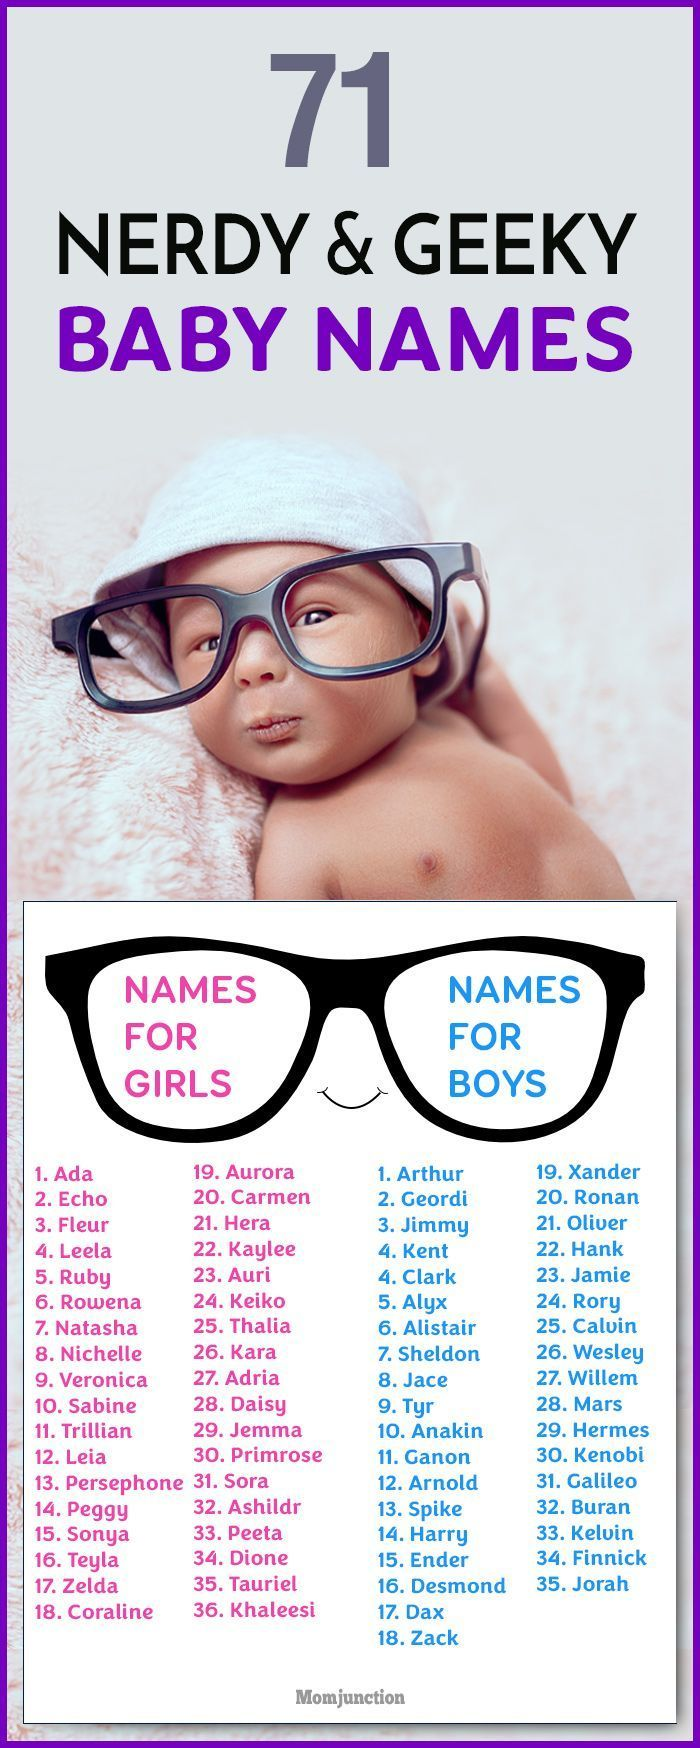 Nerdy and geeky is the new cool. So, if you have a baby on the way or are planning ahead, here are some geeky and brilliantly nerdy baby names for you.